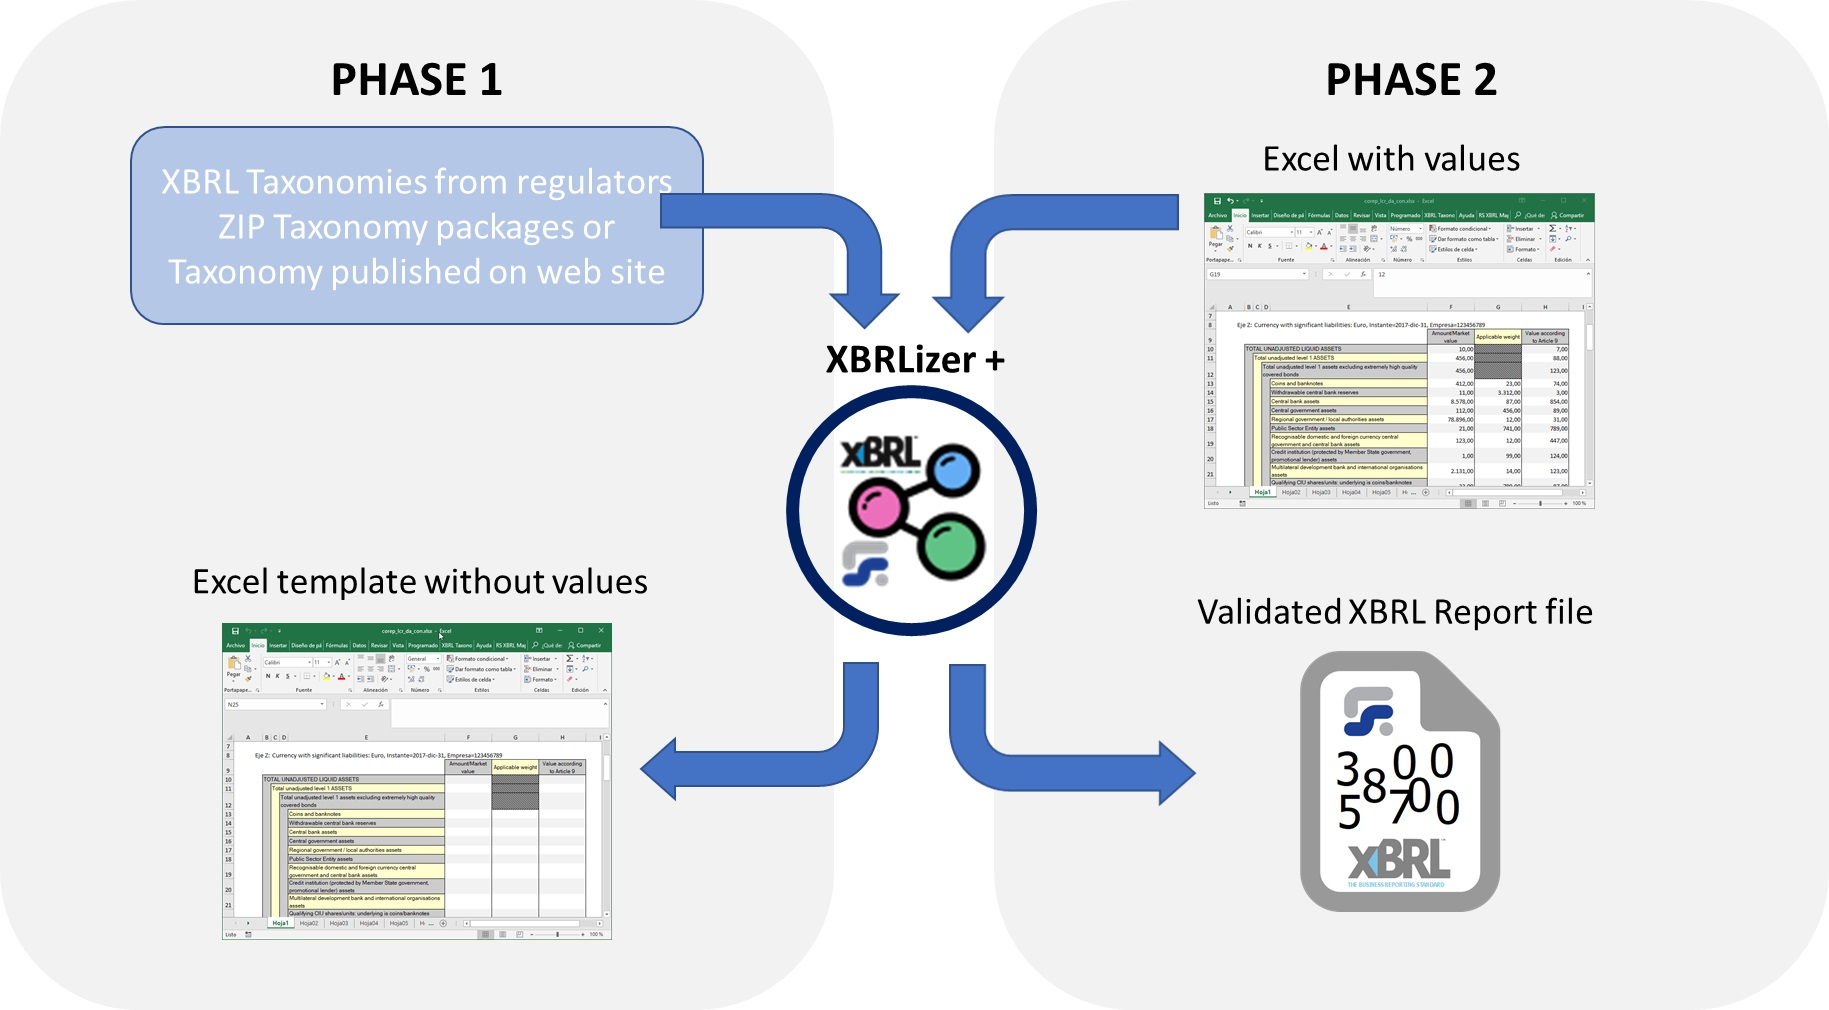 Procedure to convert Excel to XBRL. First we generate the templates, then we fill them with data, and then we export to XBRL